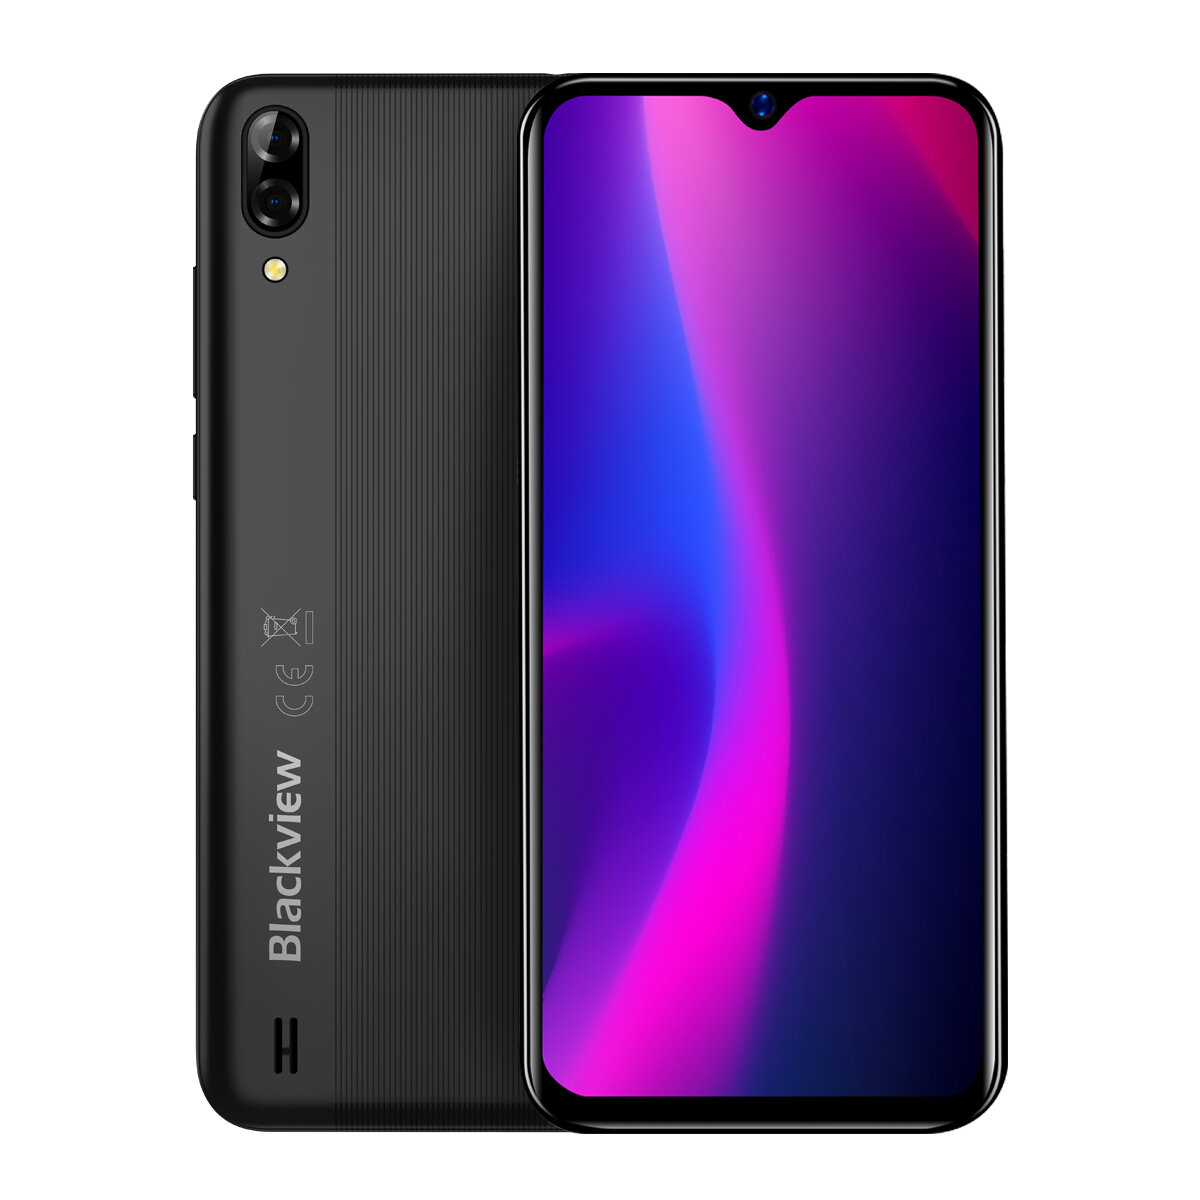 Blackview A60 6.1 inch 19:9 Waterdrop Screen 4080mAh Android 8.1 1GB RAM 16GB ROM MT6580A Quad Core 3G Smartphone - Black